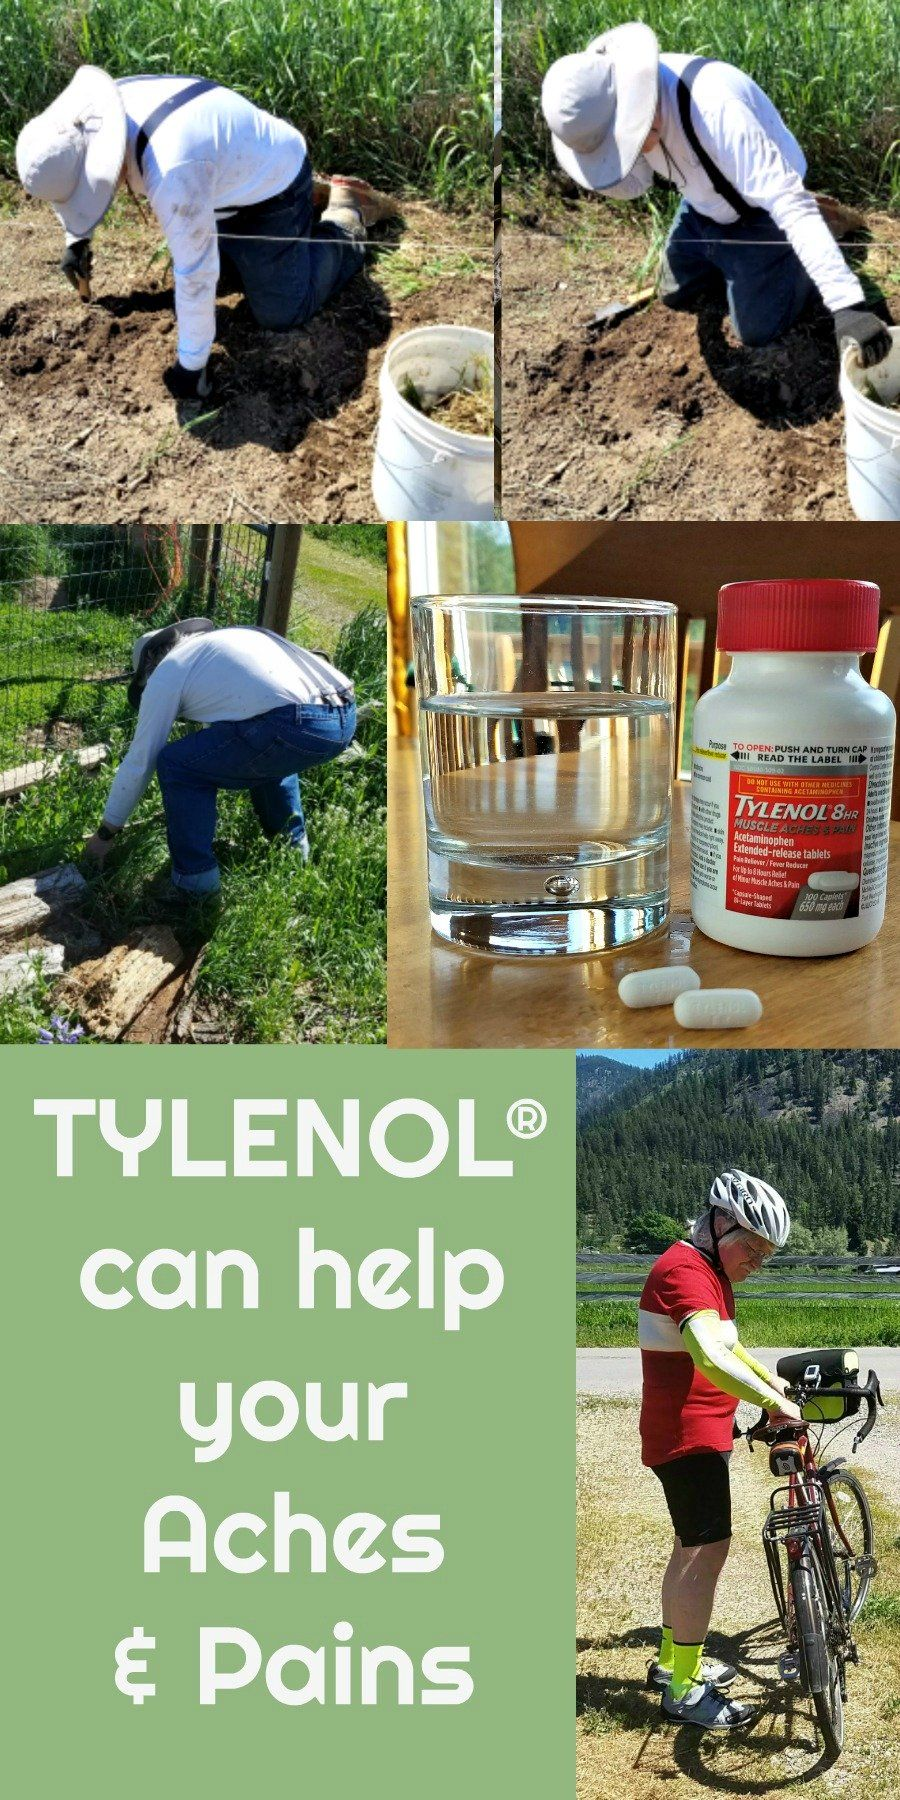 #AD help aches and pains, TYLENOL®, @target  , #ForWhatMattersMost,